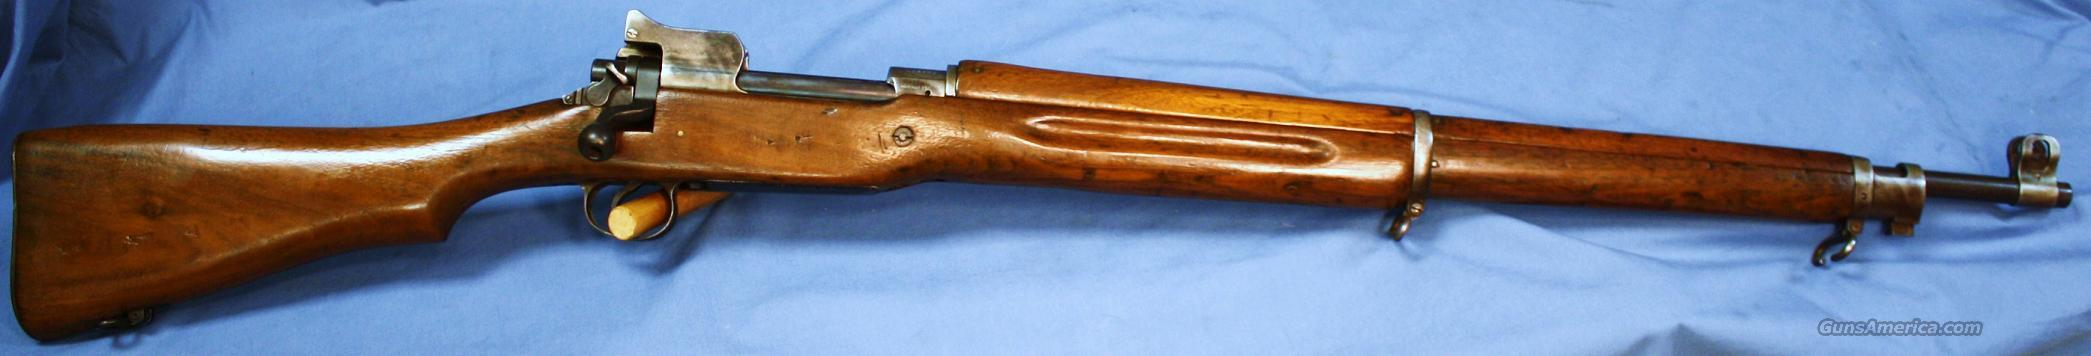 U.S. Army Model 1917 WWI Eddystone Bolt Action Rifle .30-06 Made 1918  Guns > Rifles > Military Misc. Rifles US > Model 1917 Variants